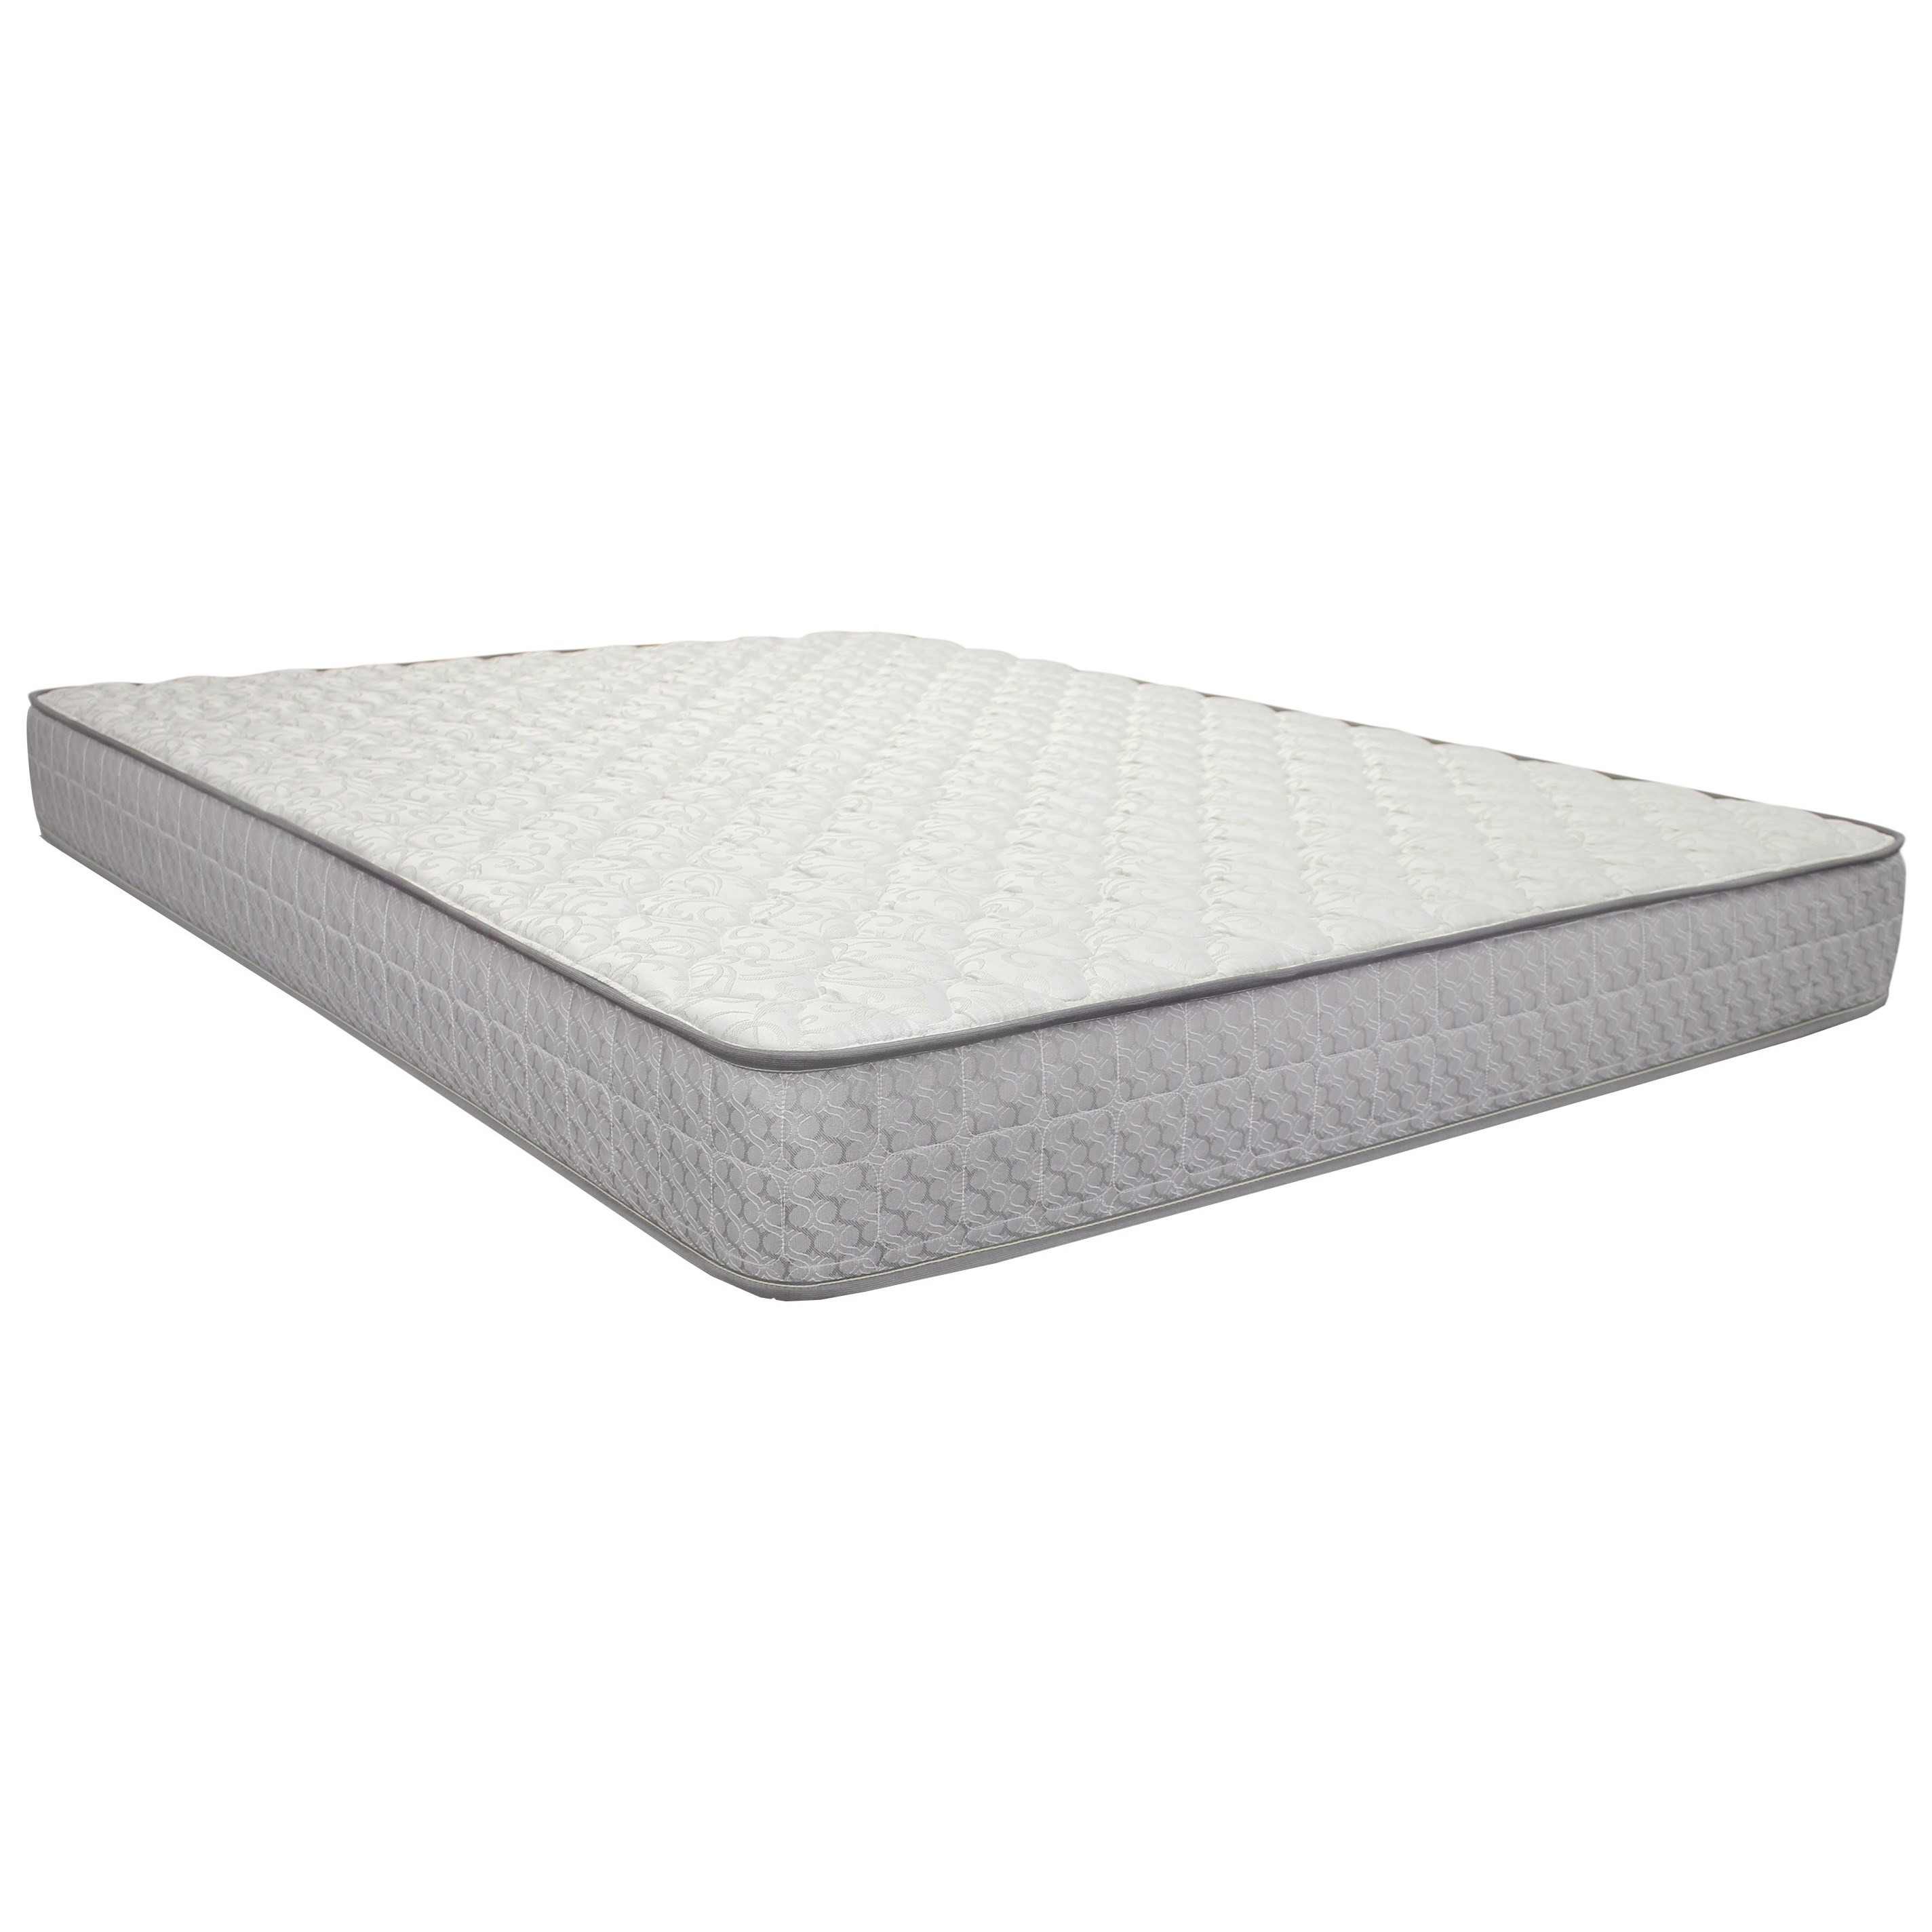 "Full 8 1/2"" Innerspring EPT Mattress"